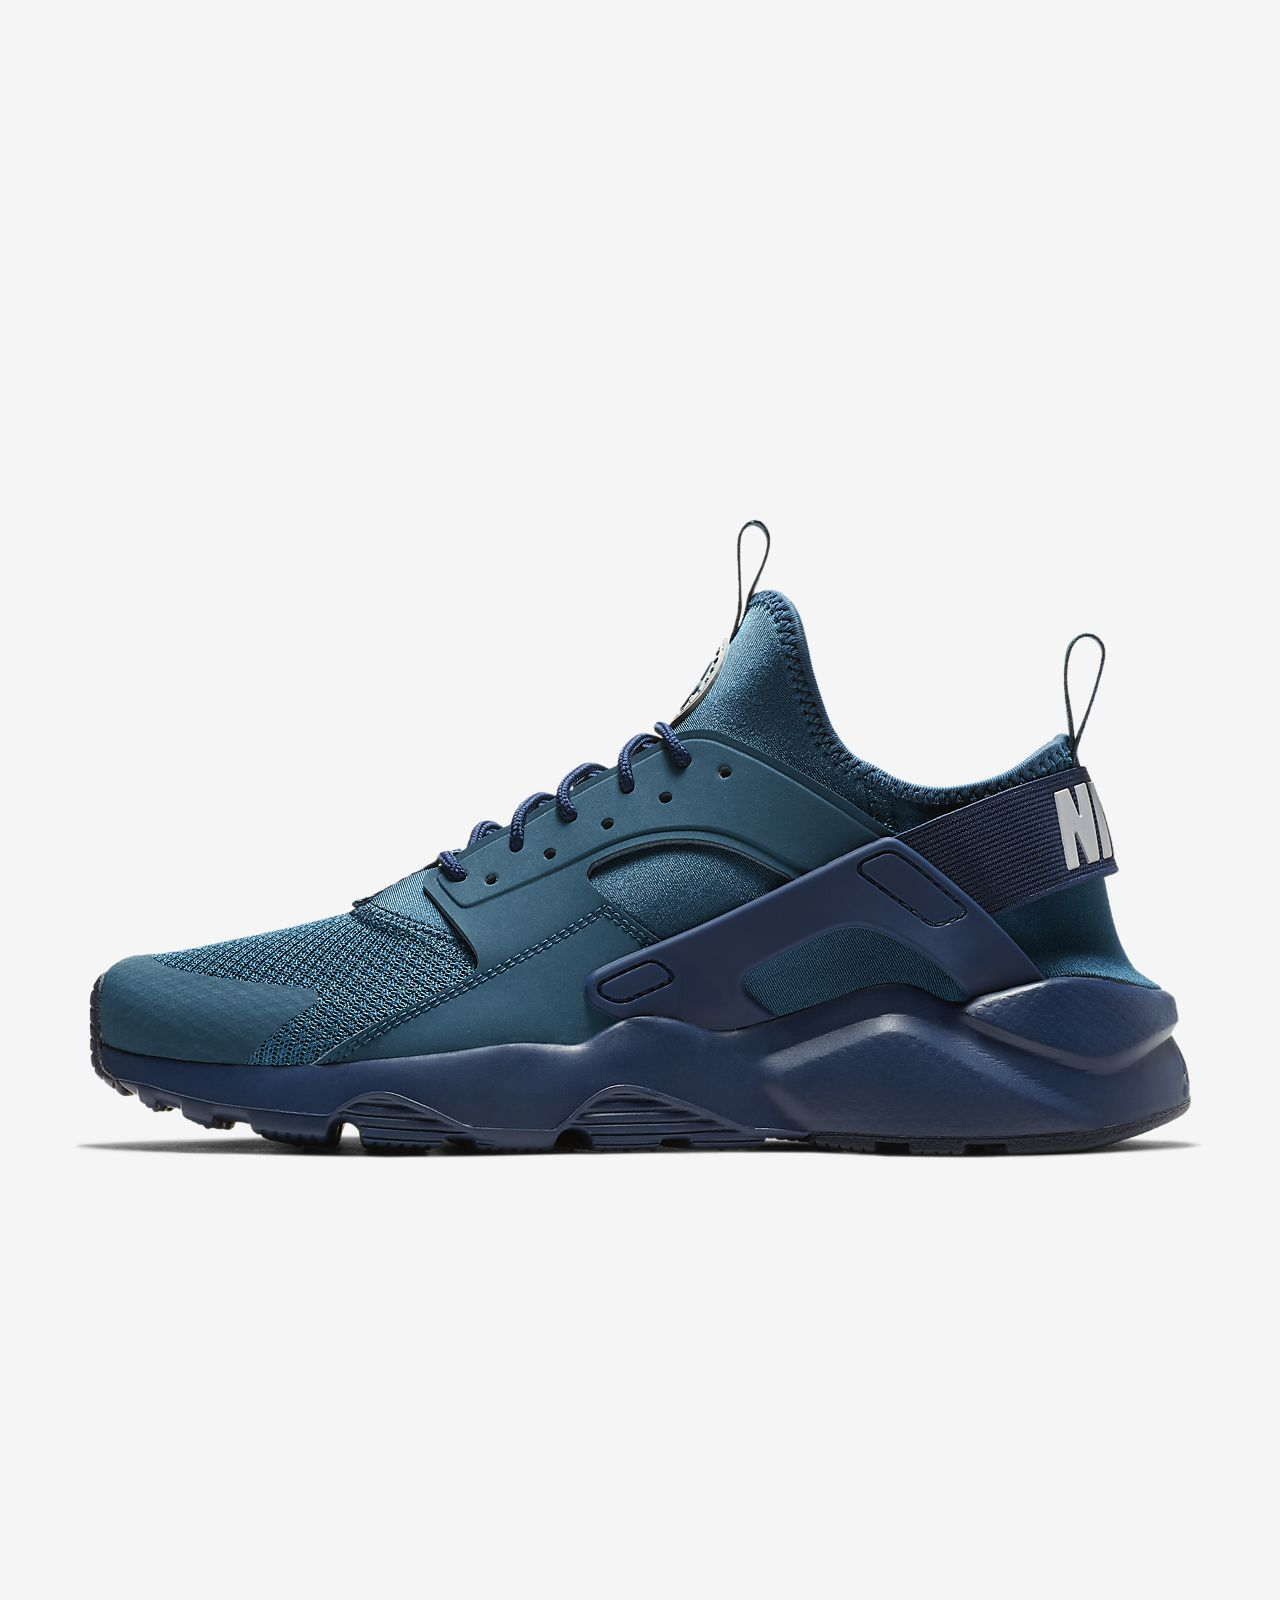 hot sale online 69e0c 67eac ... Nike Air Huarache Ultra Men s Shoe